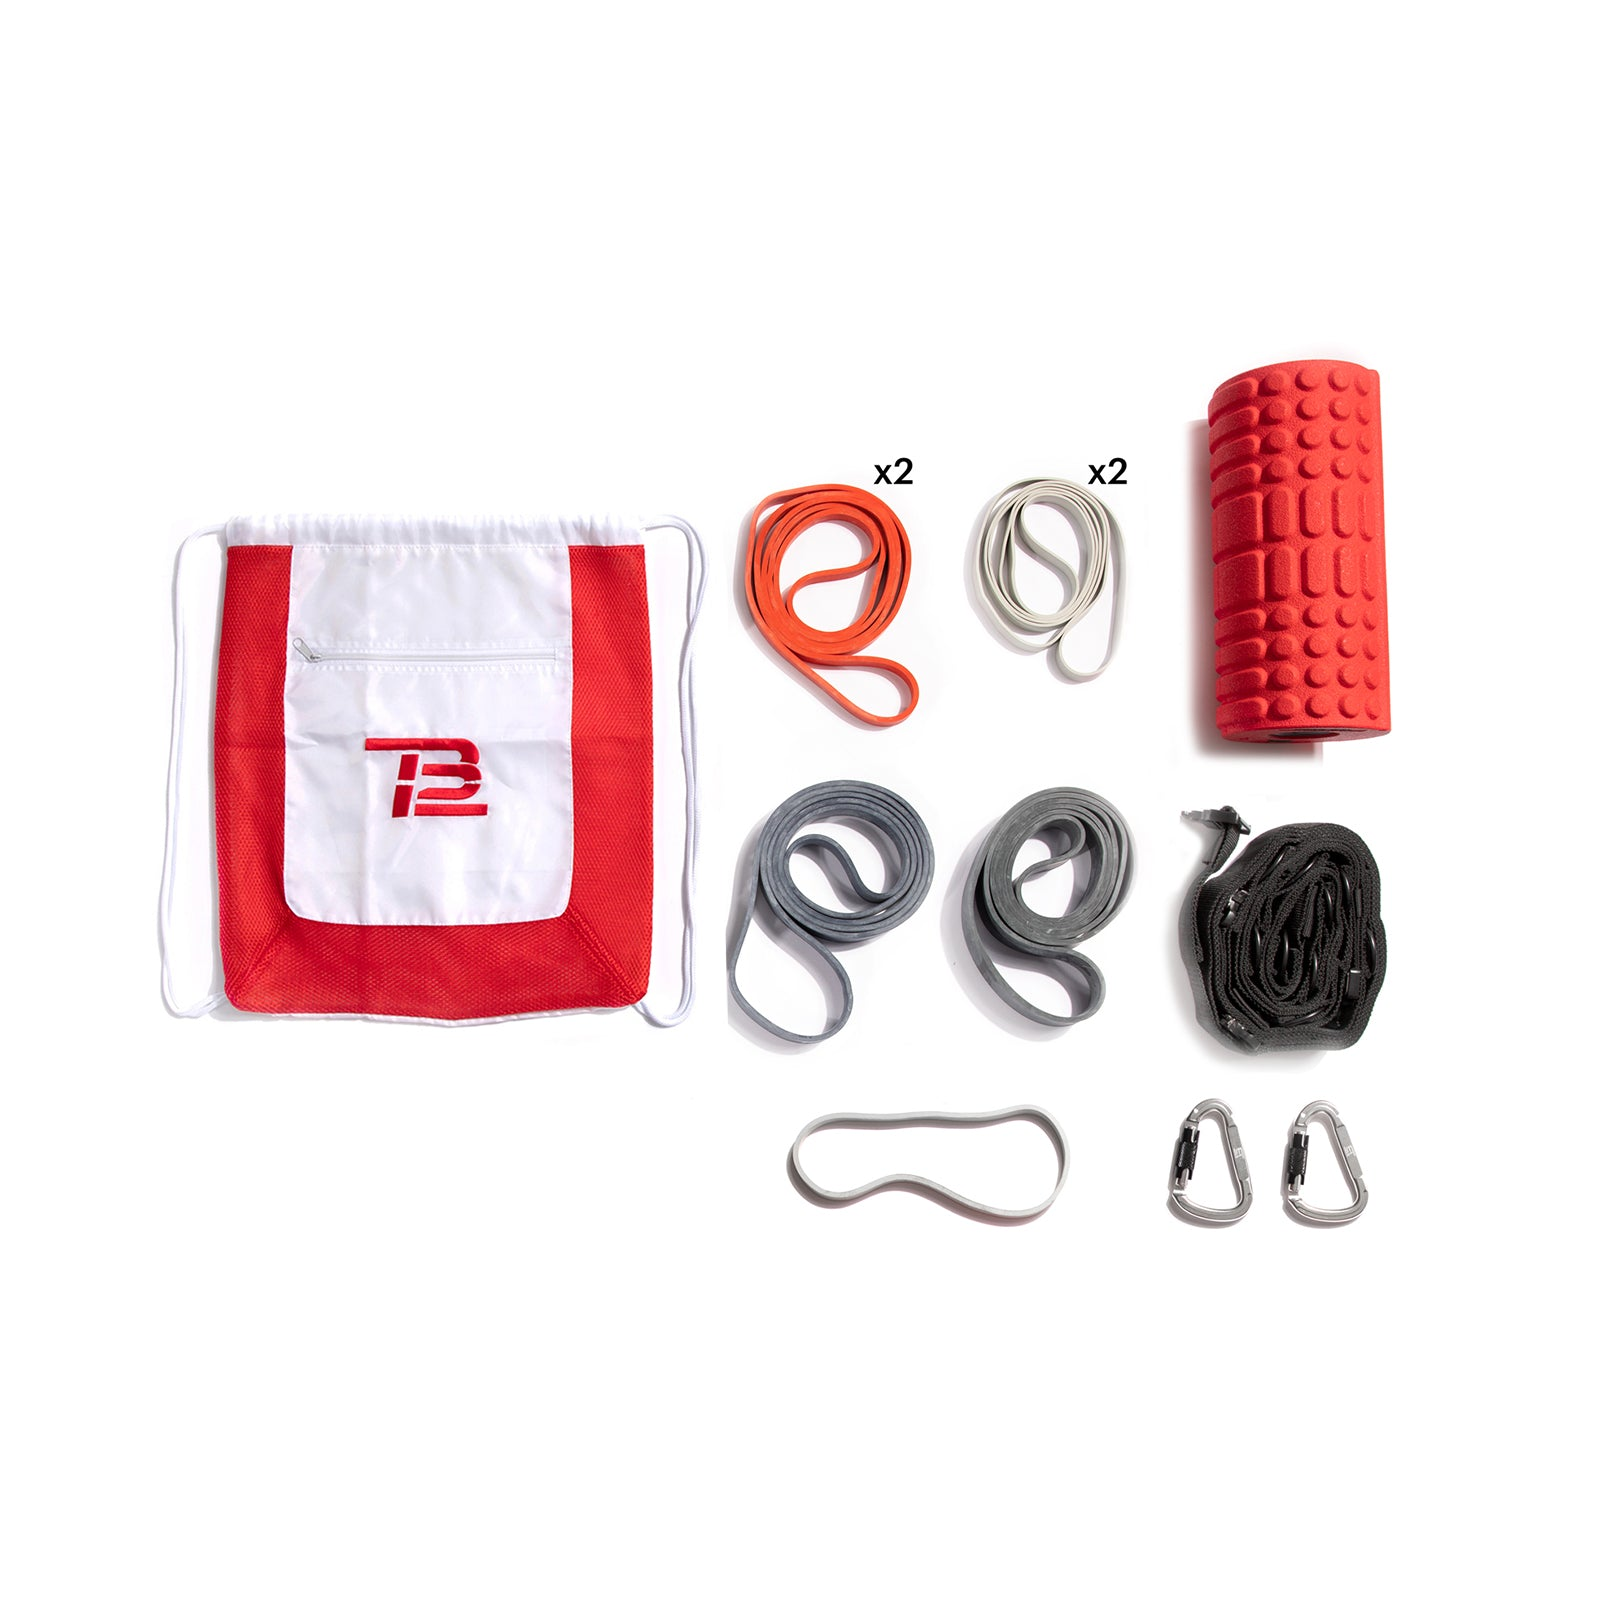 TB12 X Variis Active Recovery Gym Kit